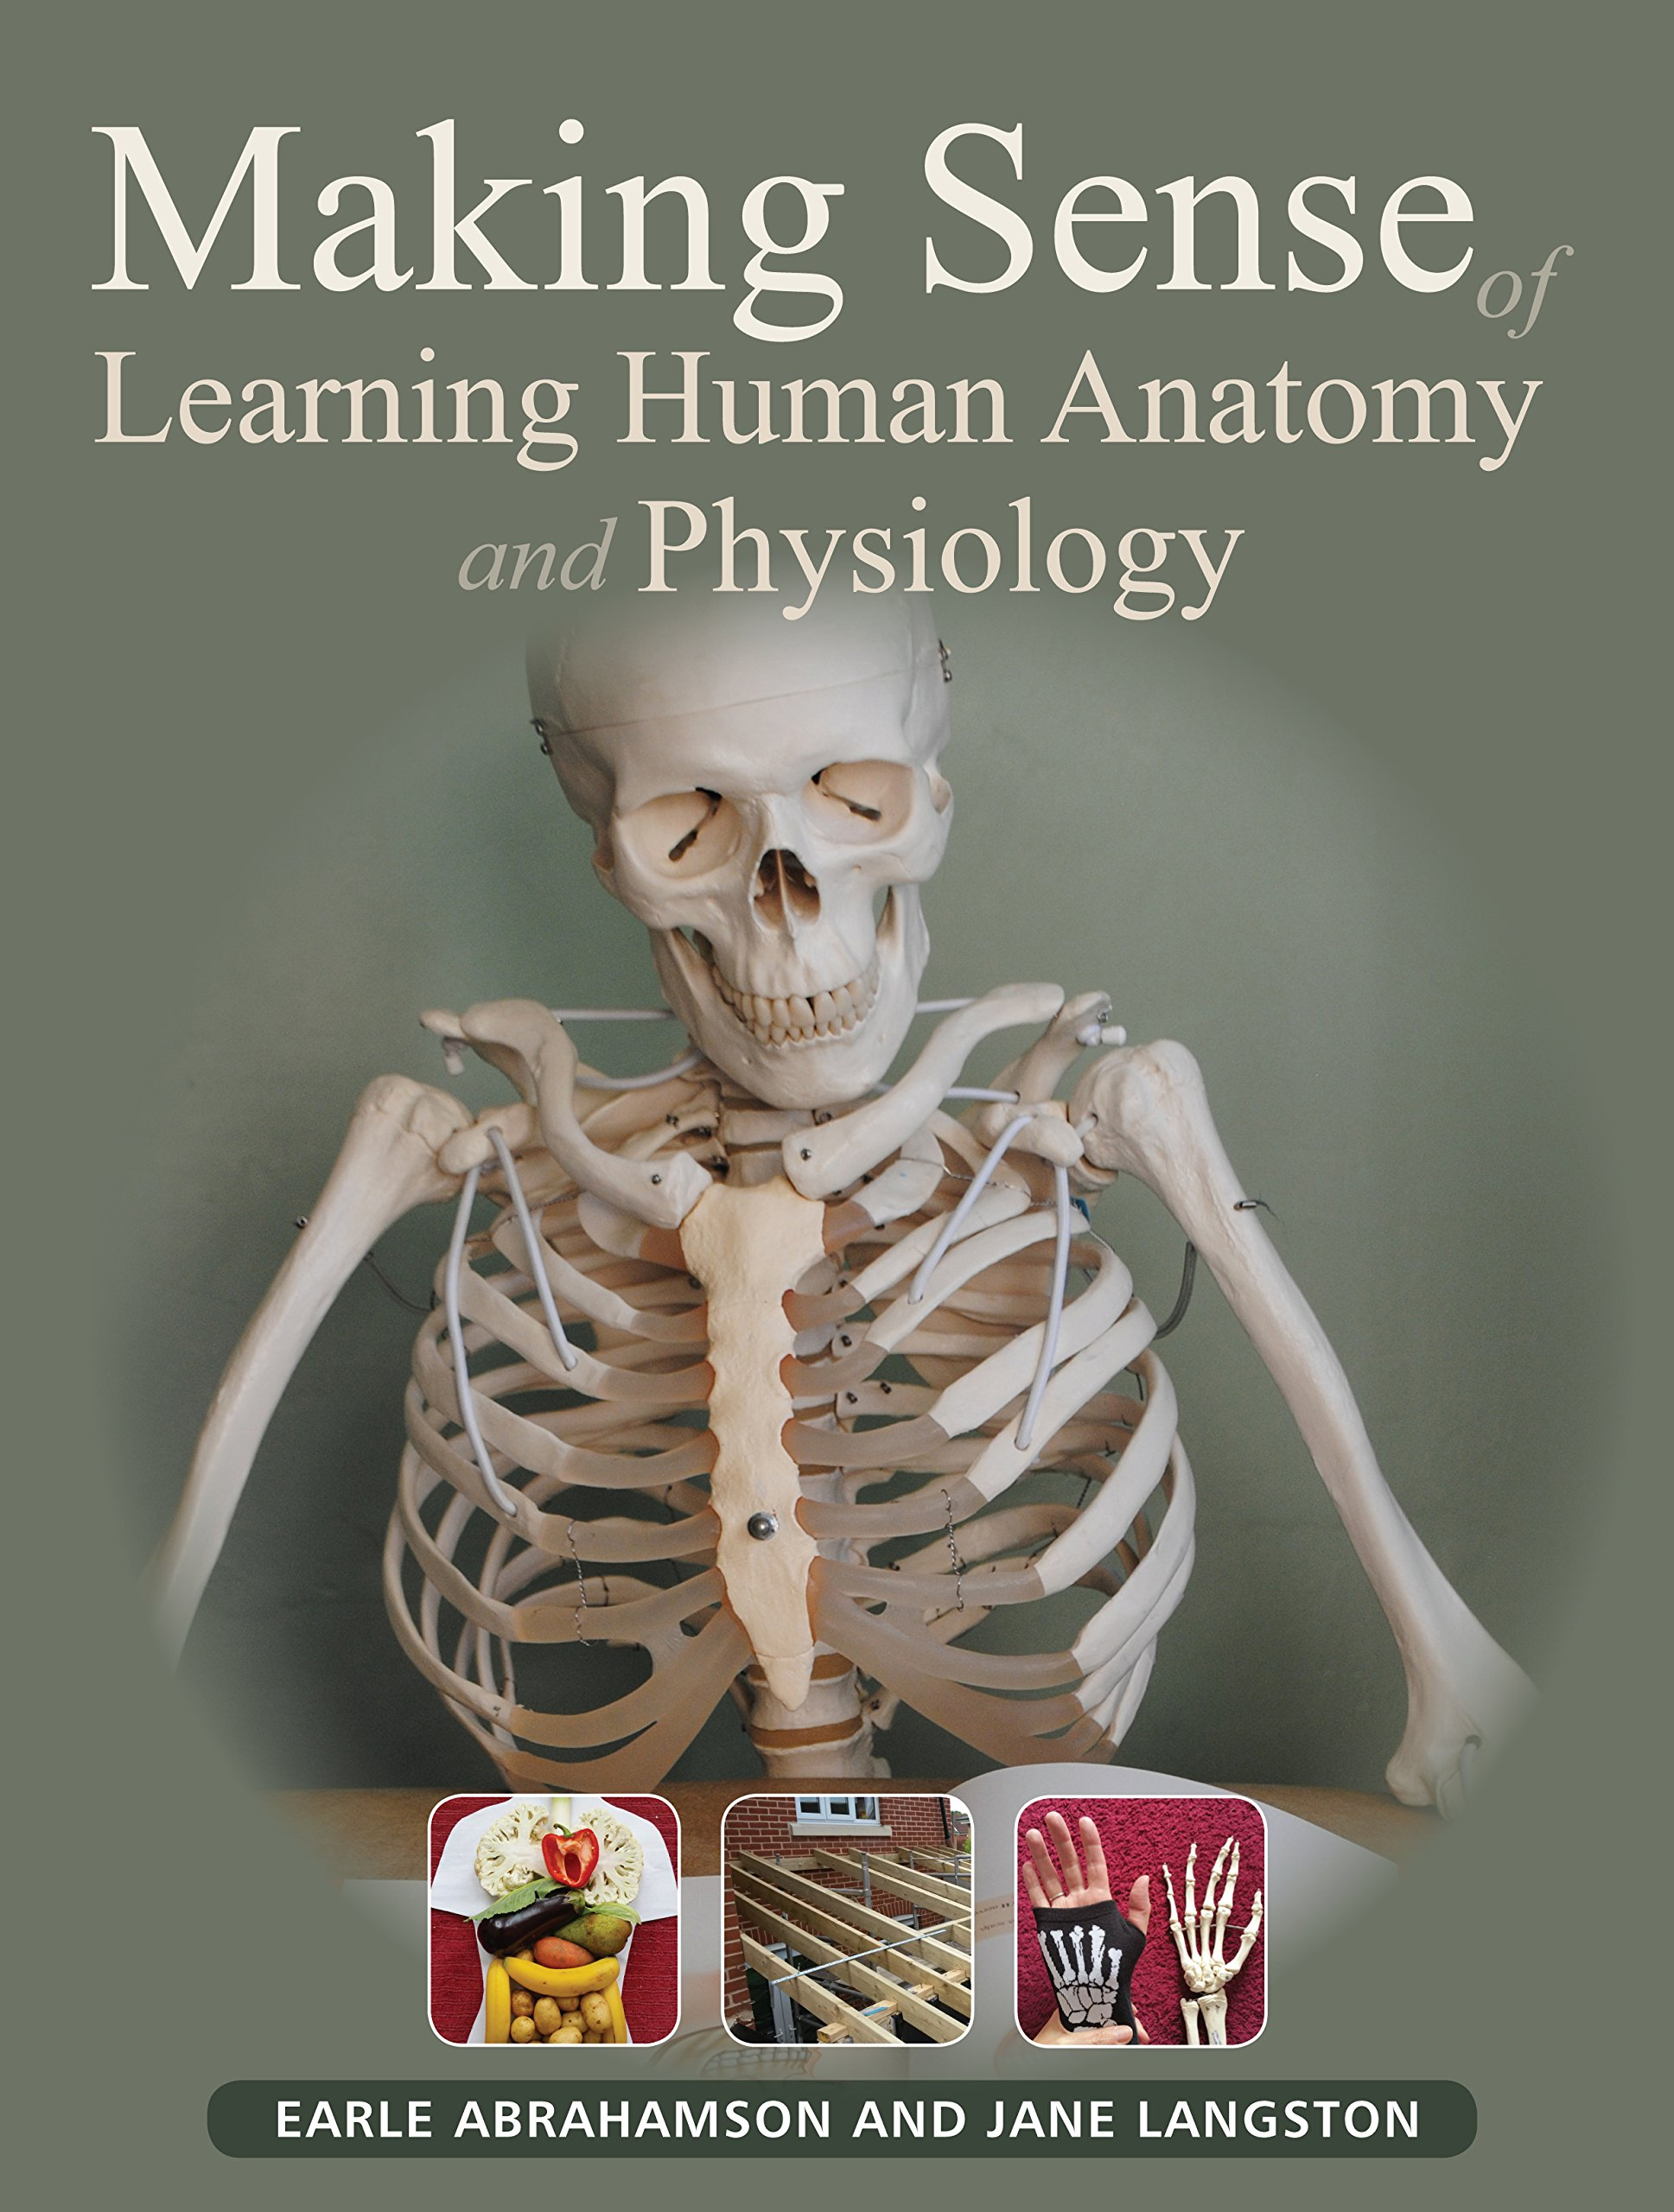 Making Sense of Learning Human Anatomy and Physiology: Amazon.co.uk ...